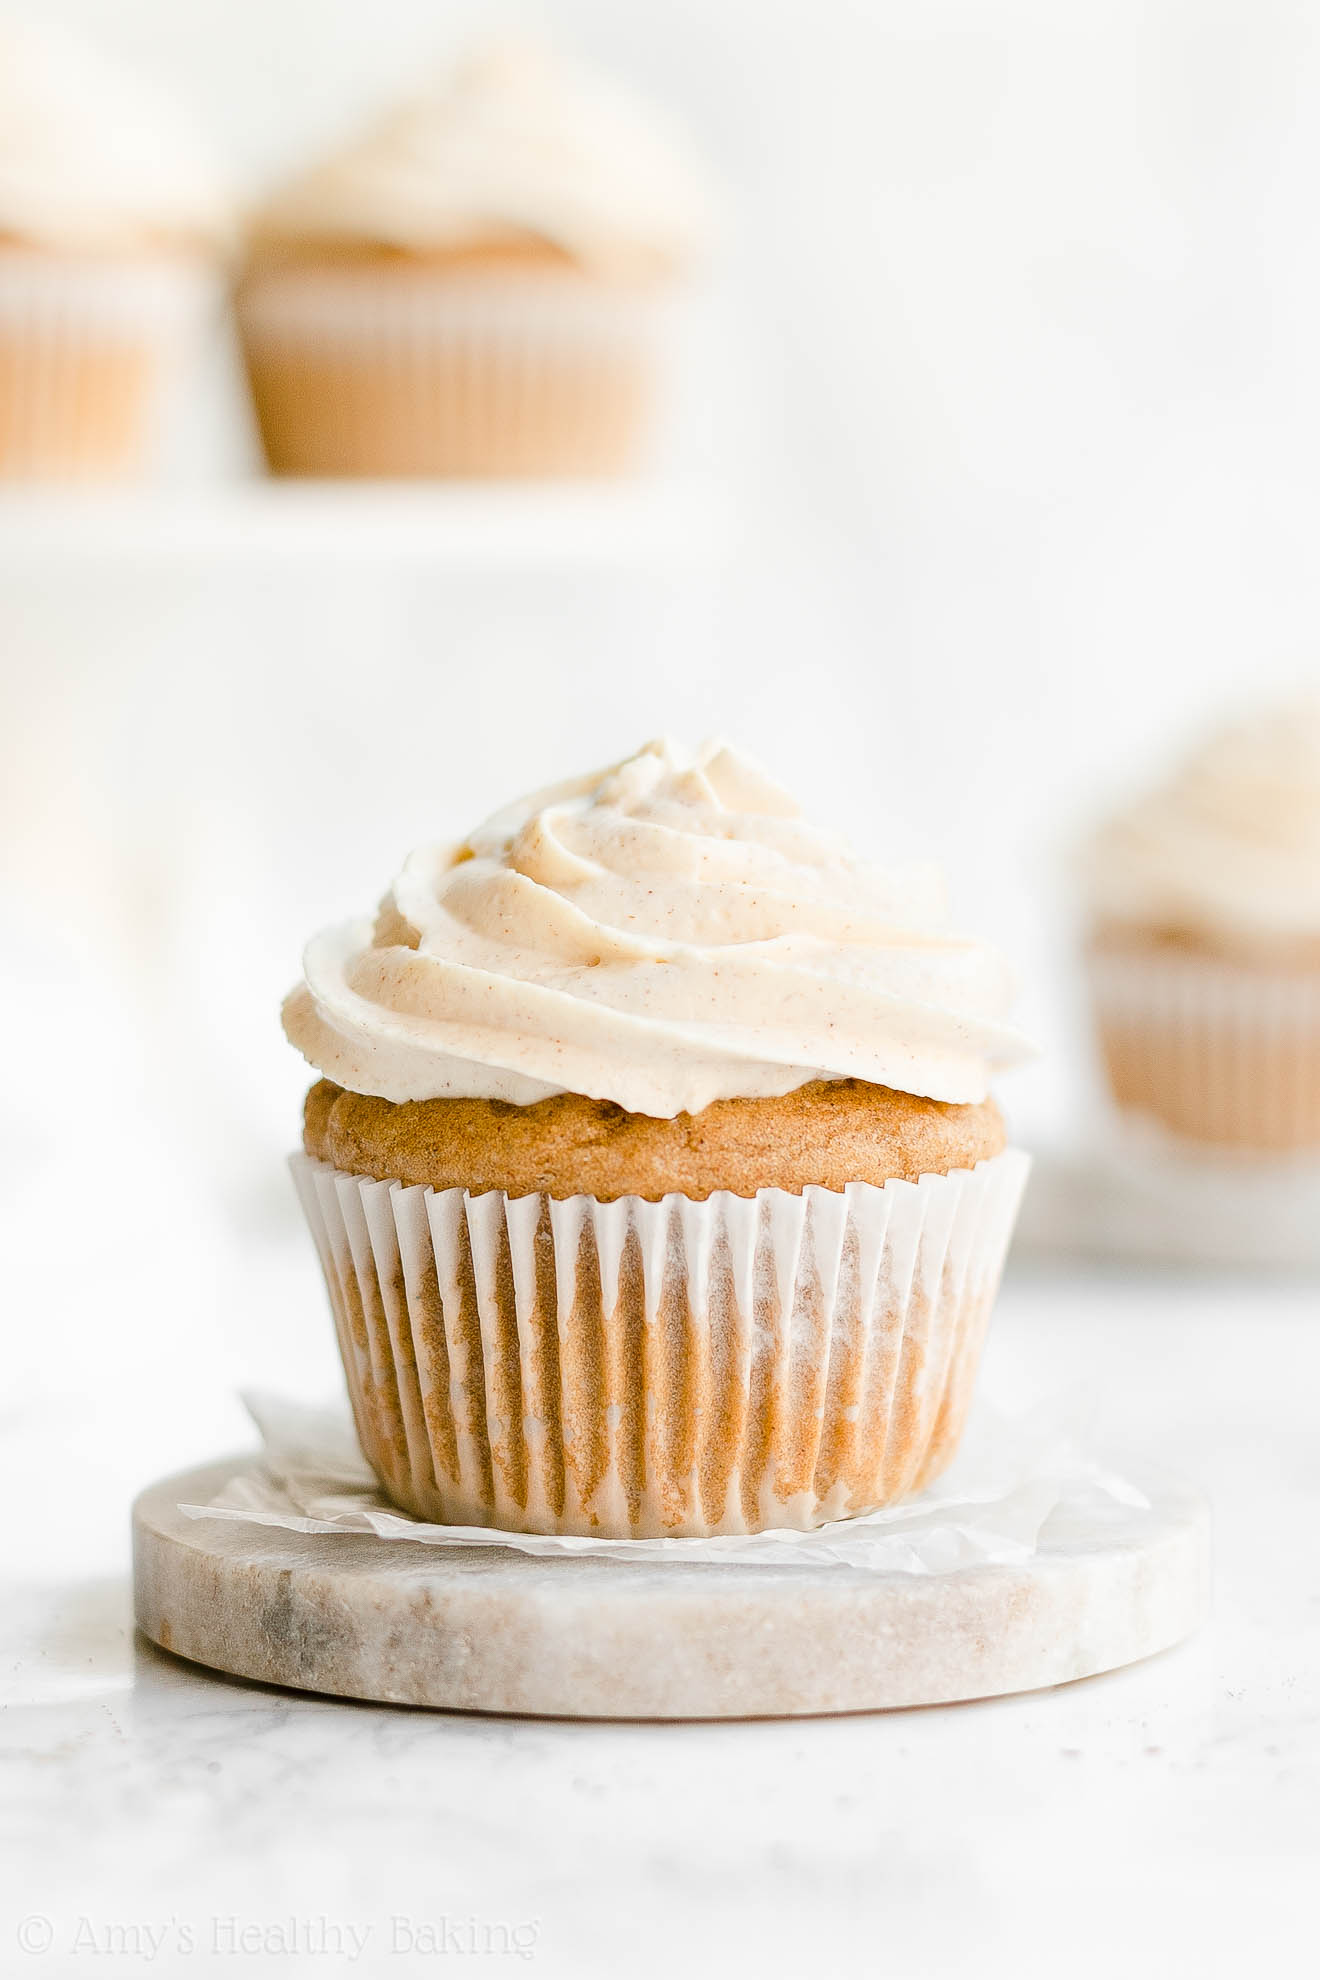 Easy Healthy Whole Wheat Eggnog Cupcakes with Greek Yogurt Frosting